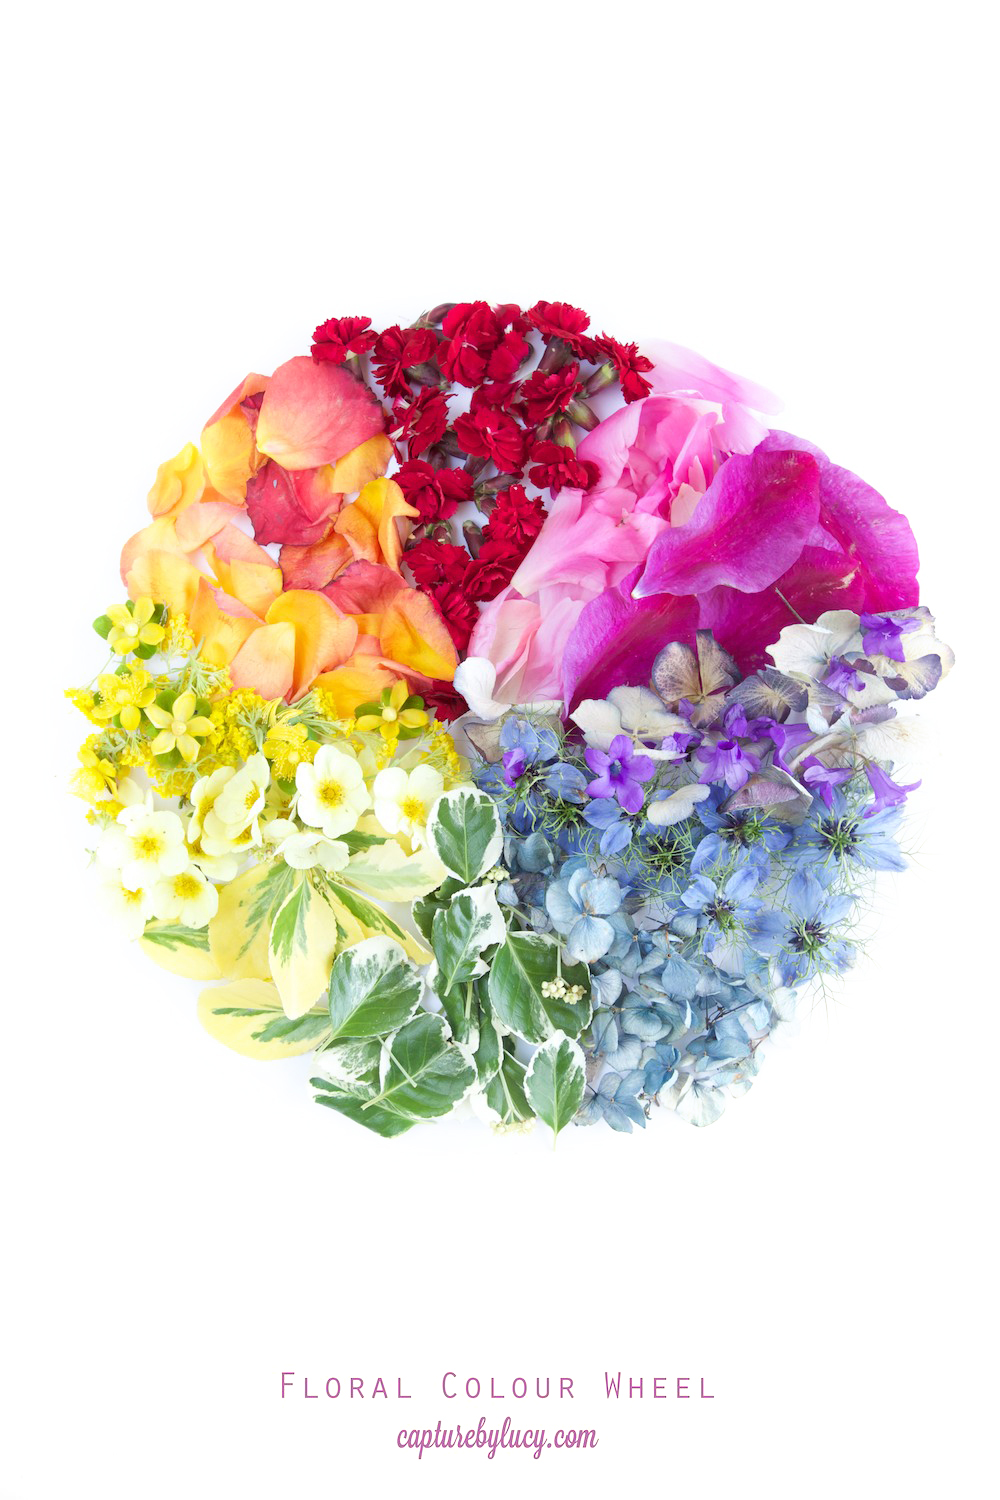 Floral Colour Wheel.jpg